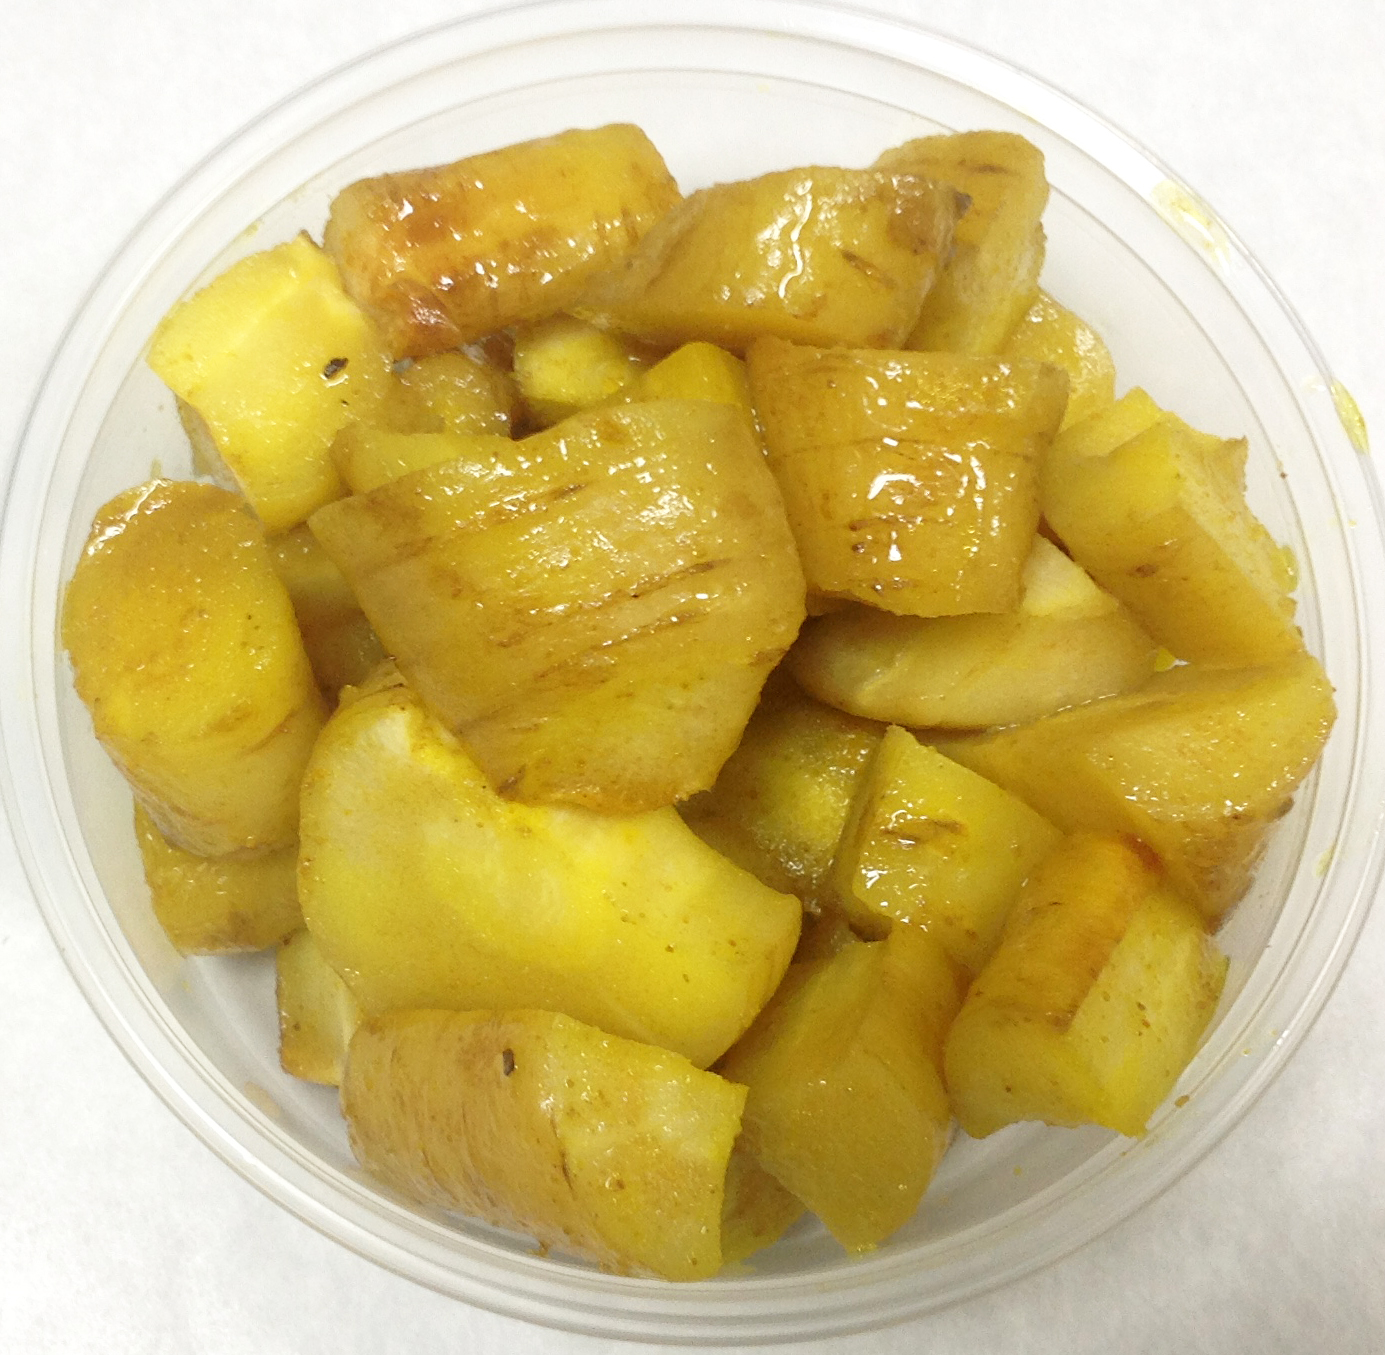 Baked parsnips with turmeric.